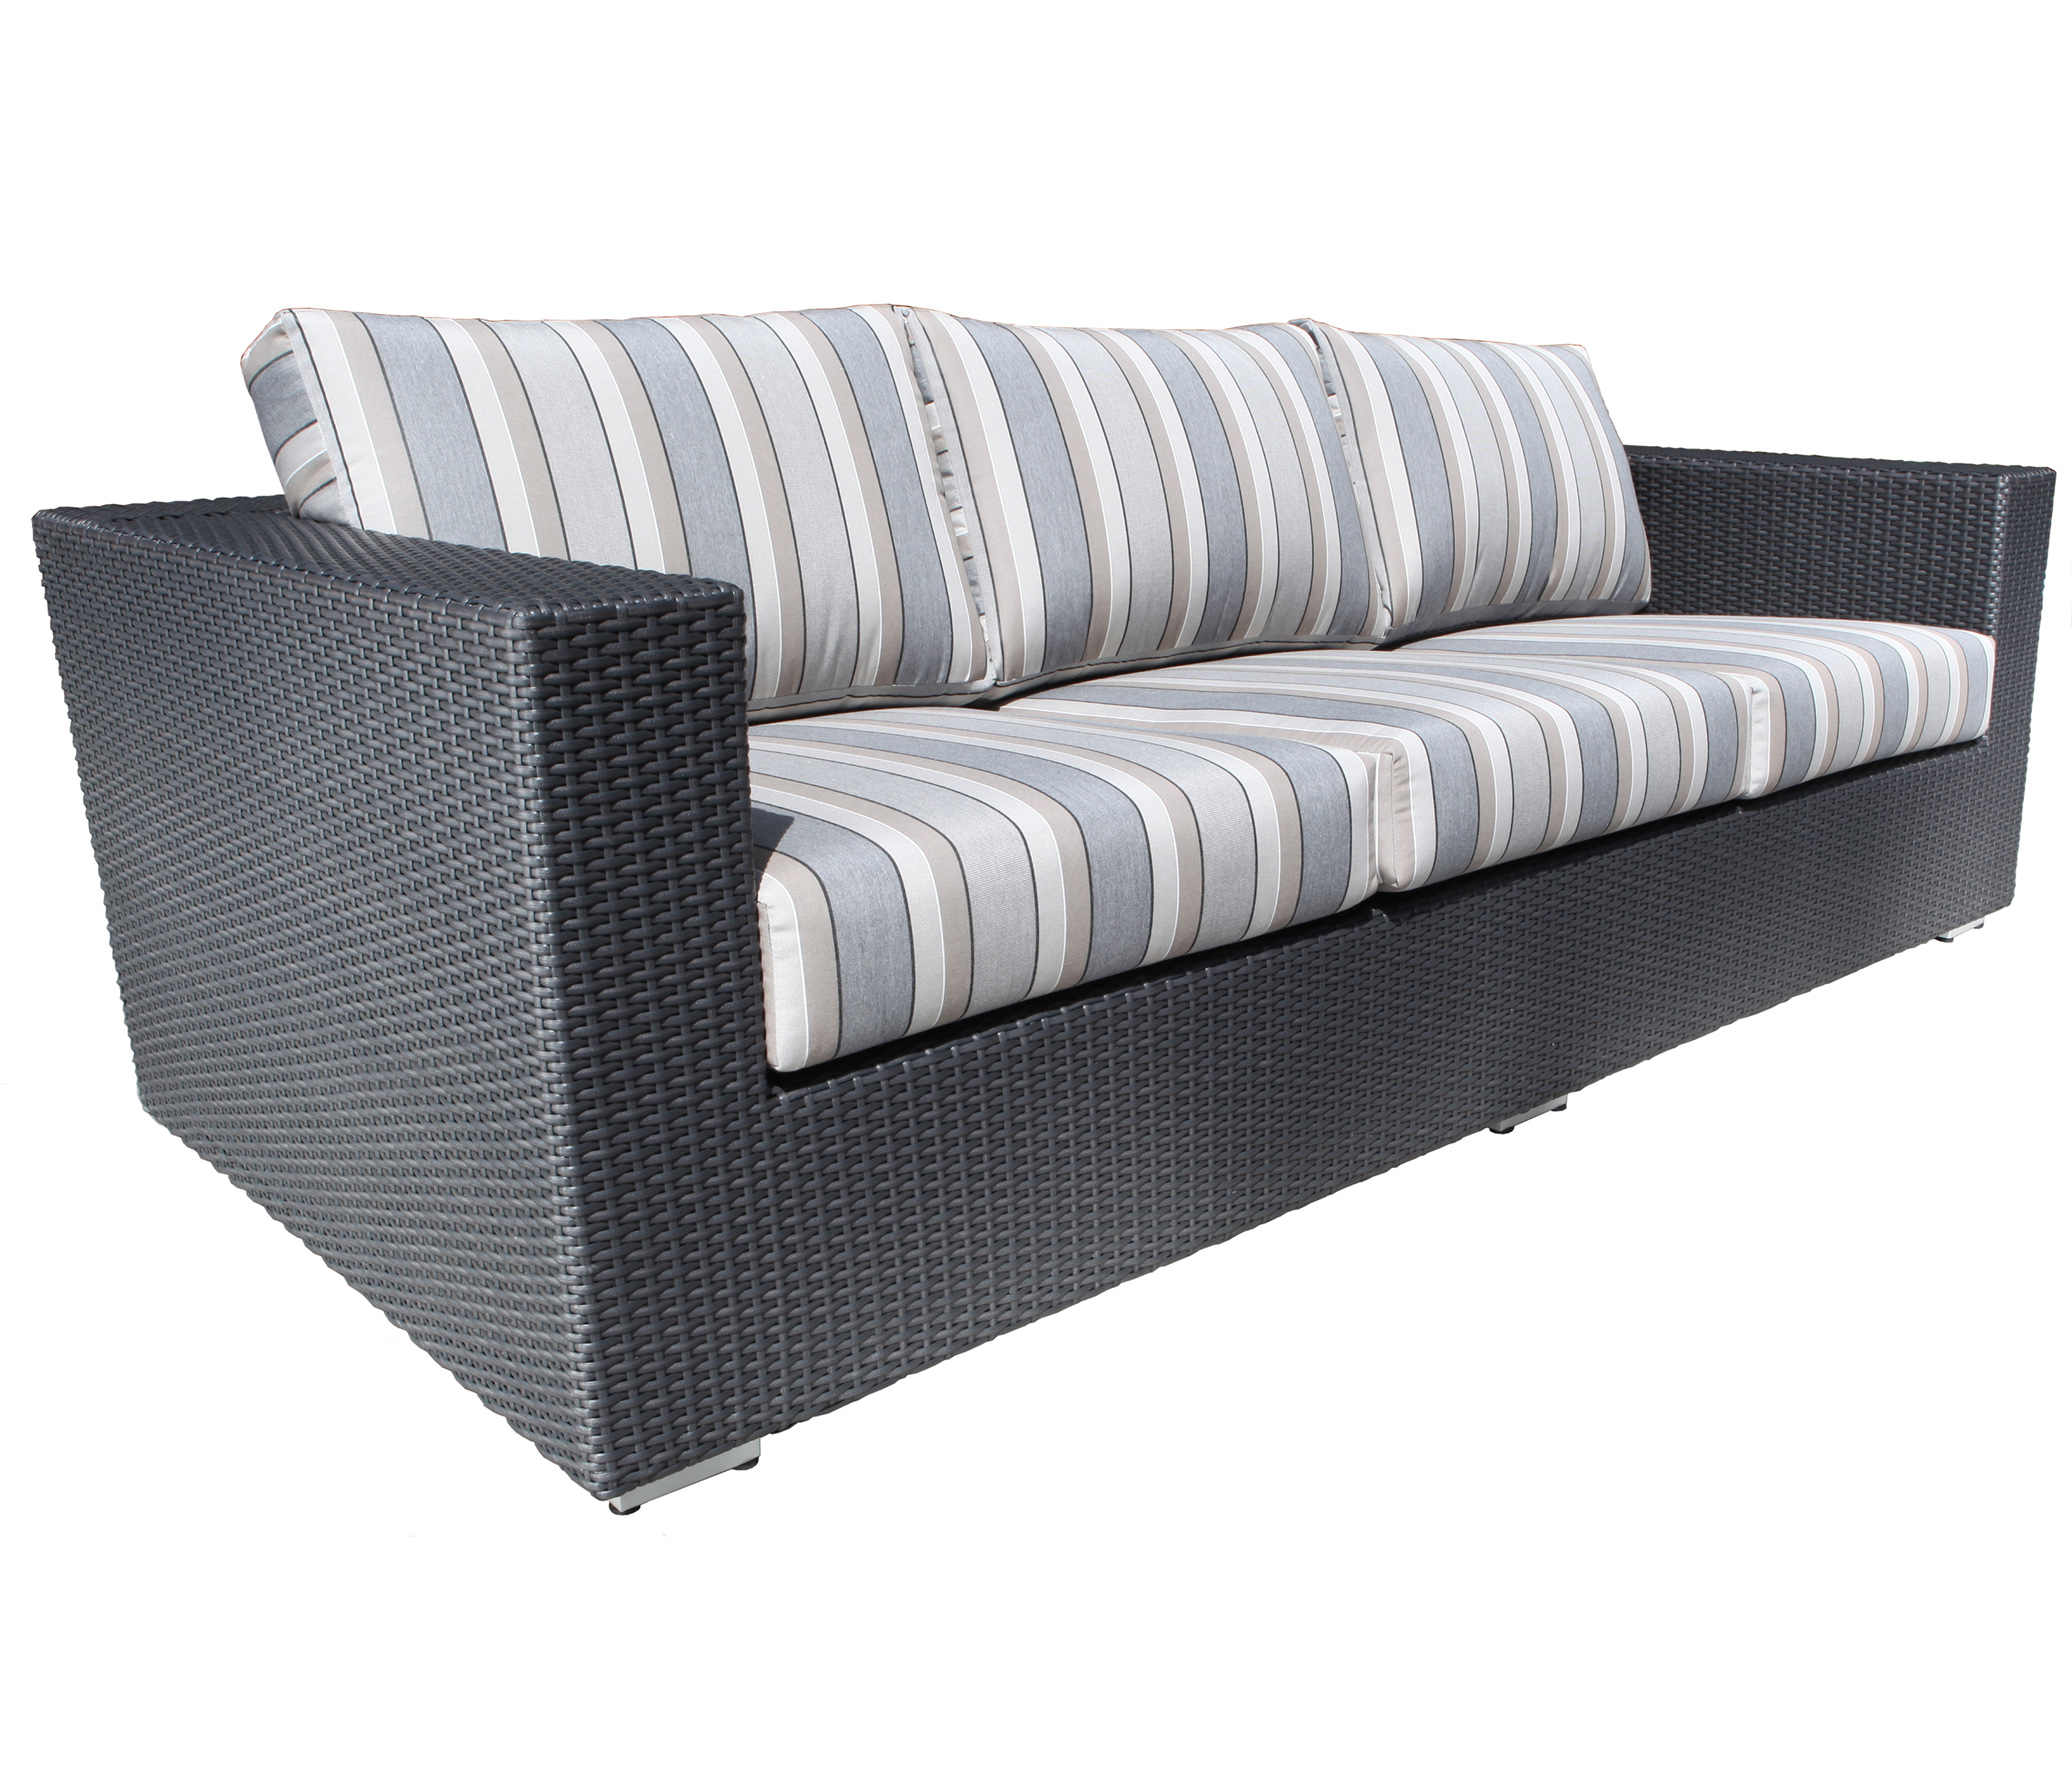 Chorus Deep Seating Wicker Sofa Patio Furniture at Sun Country